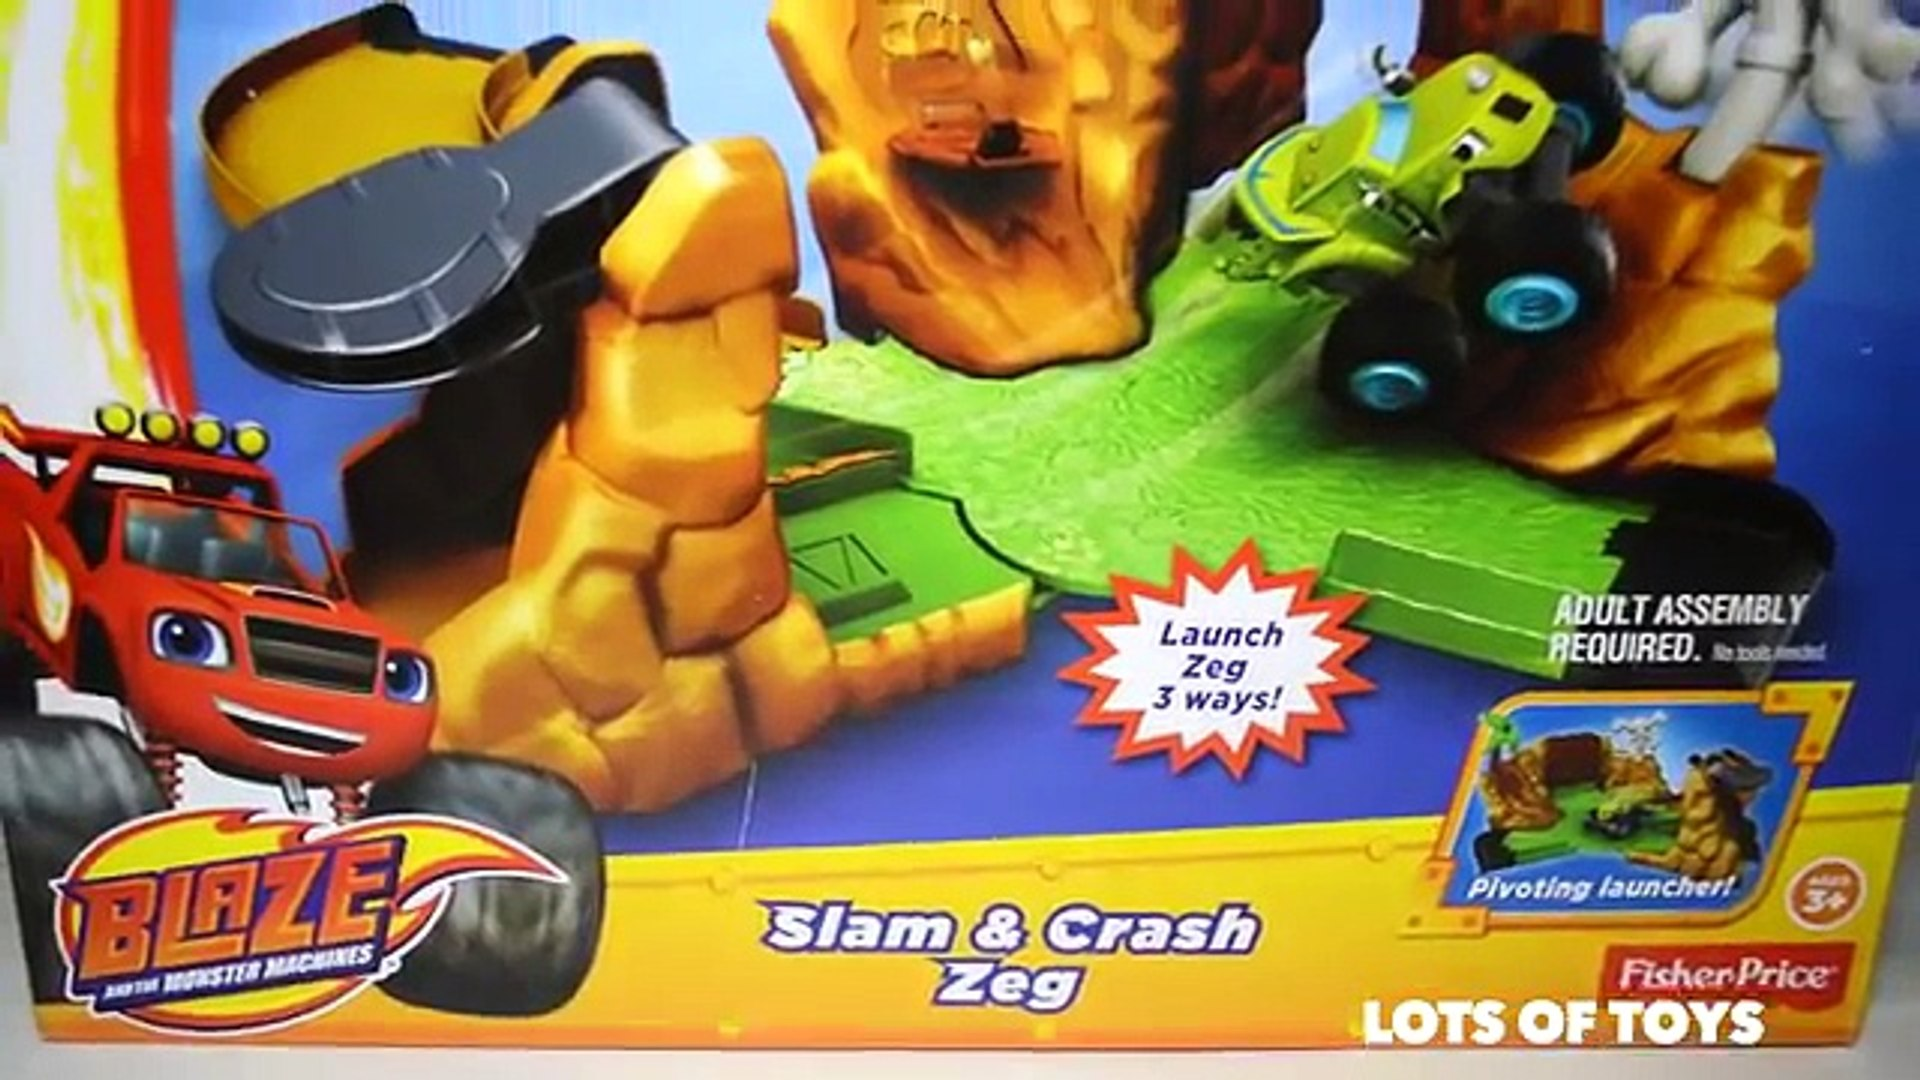 Blaze and the Monster Machines Slam & Crash Zeg!! Blaze, Starla, Big Horn, Crusher Lots of Toys